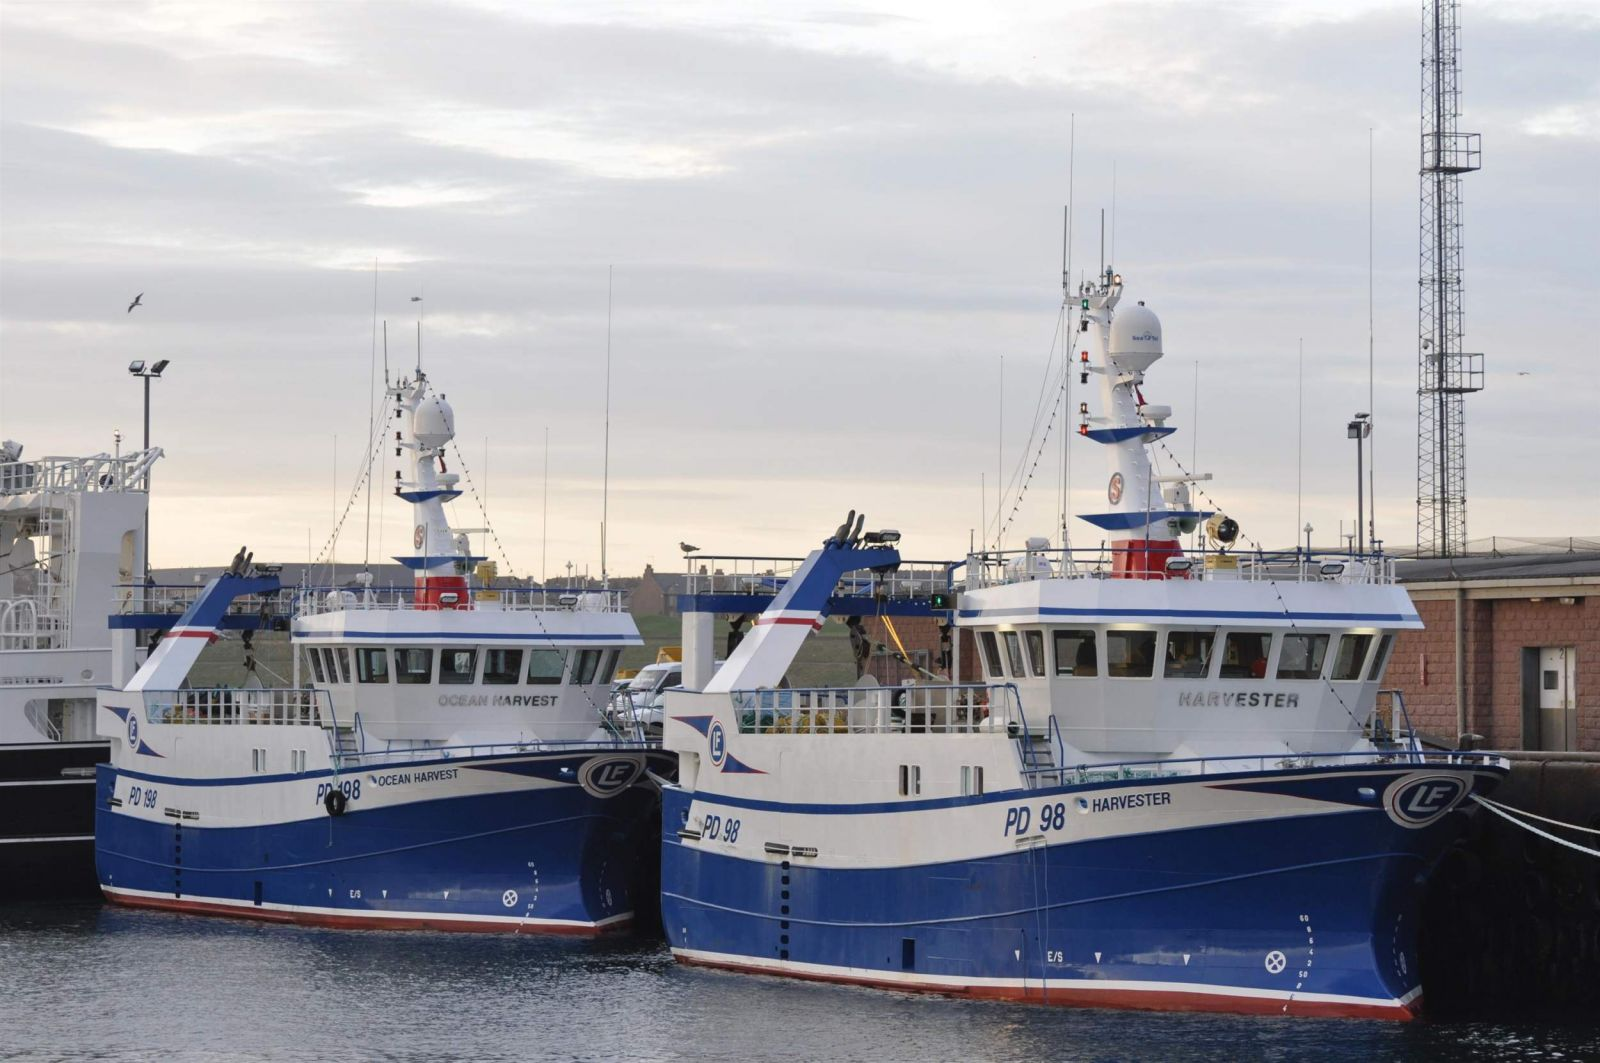 Ocean Harvest PD 198 and Harvester PD 98